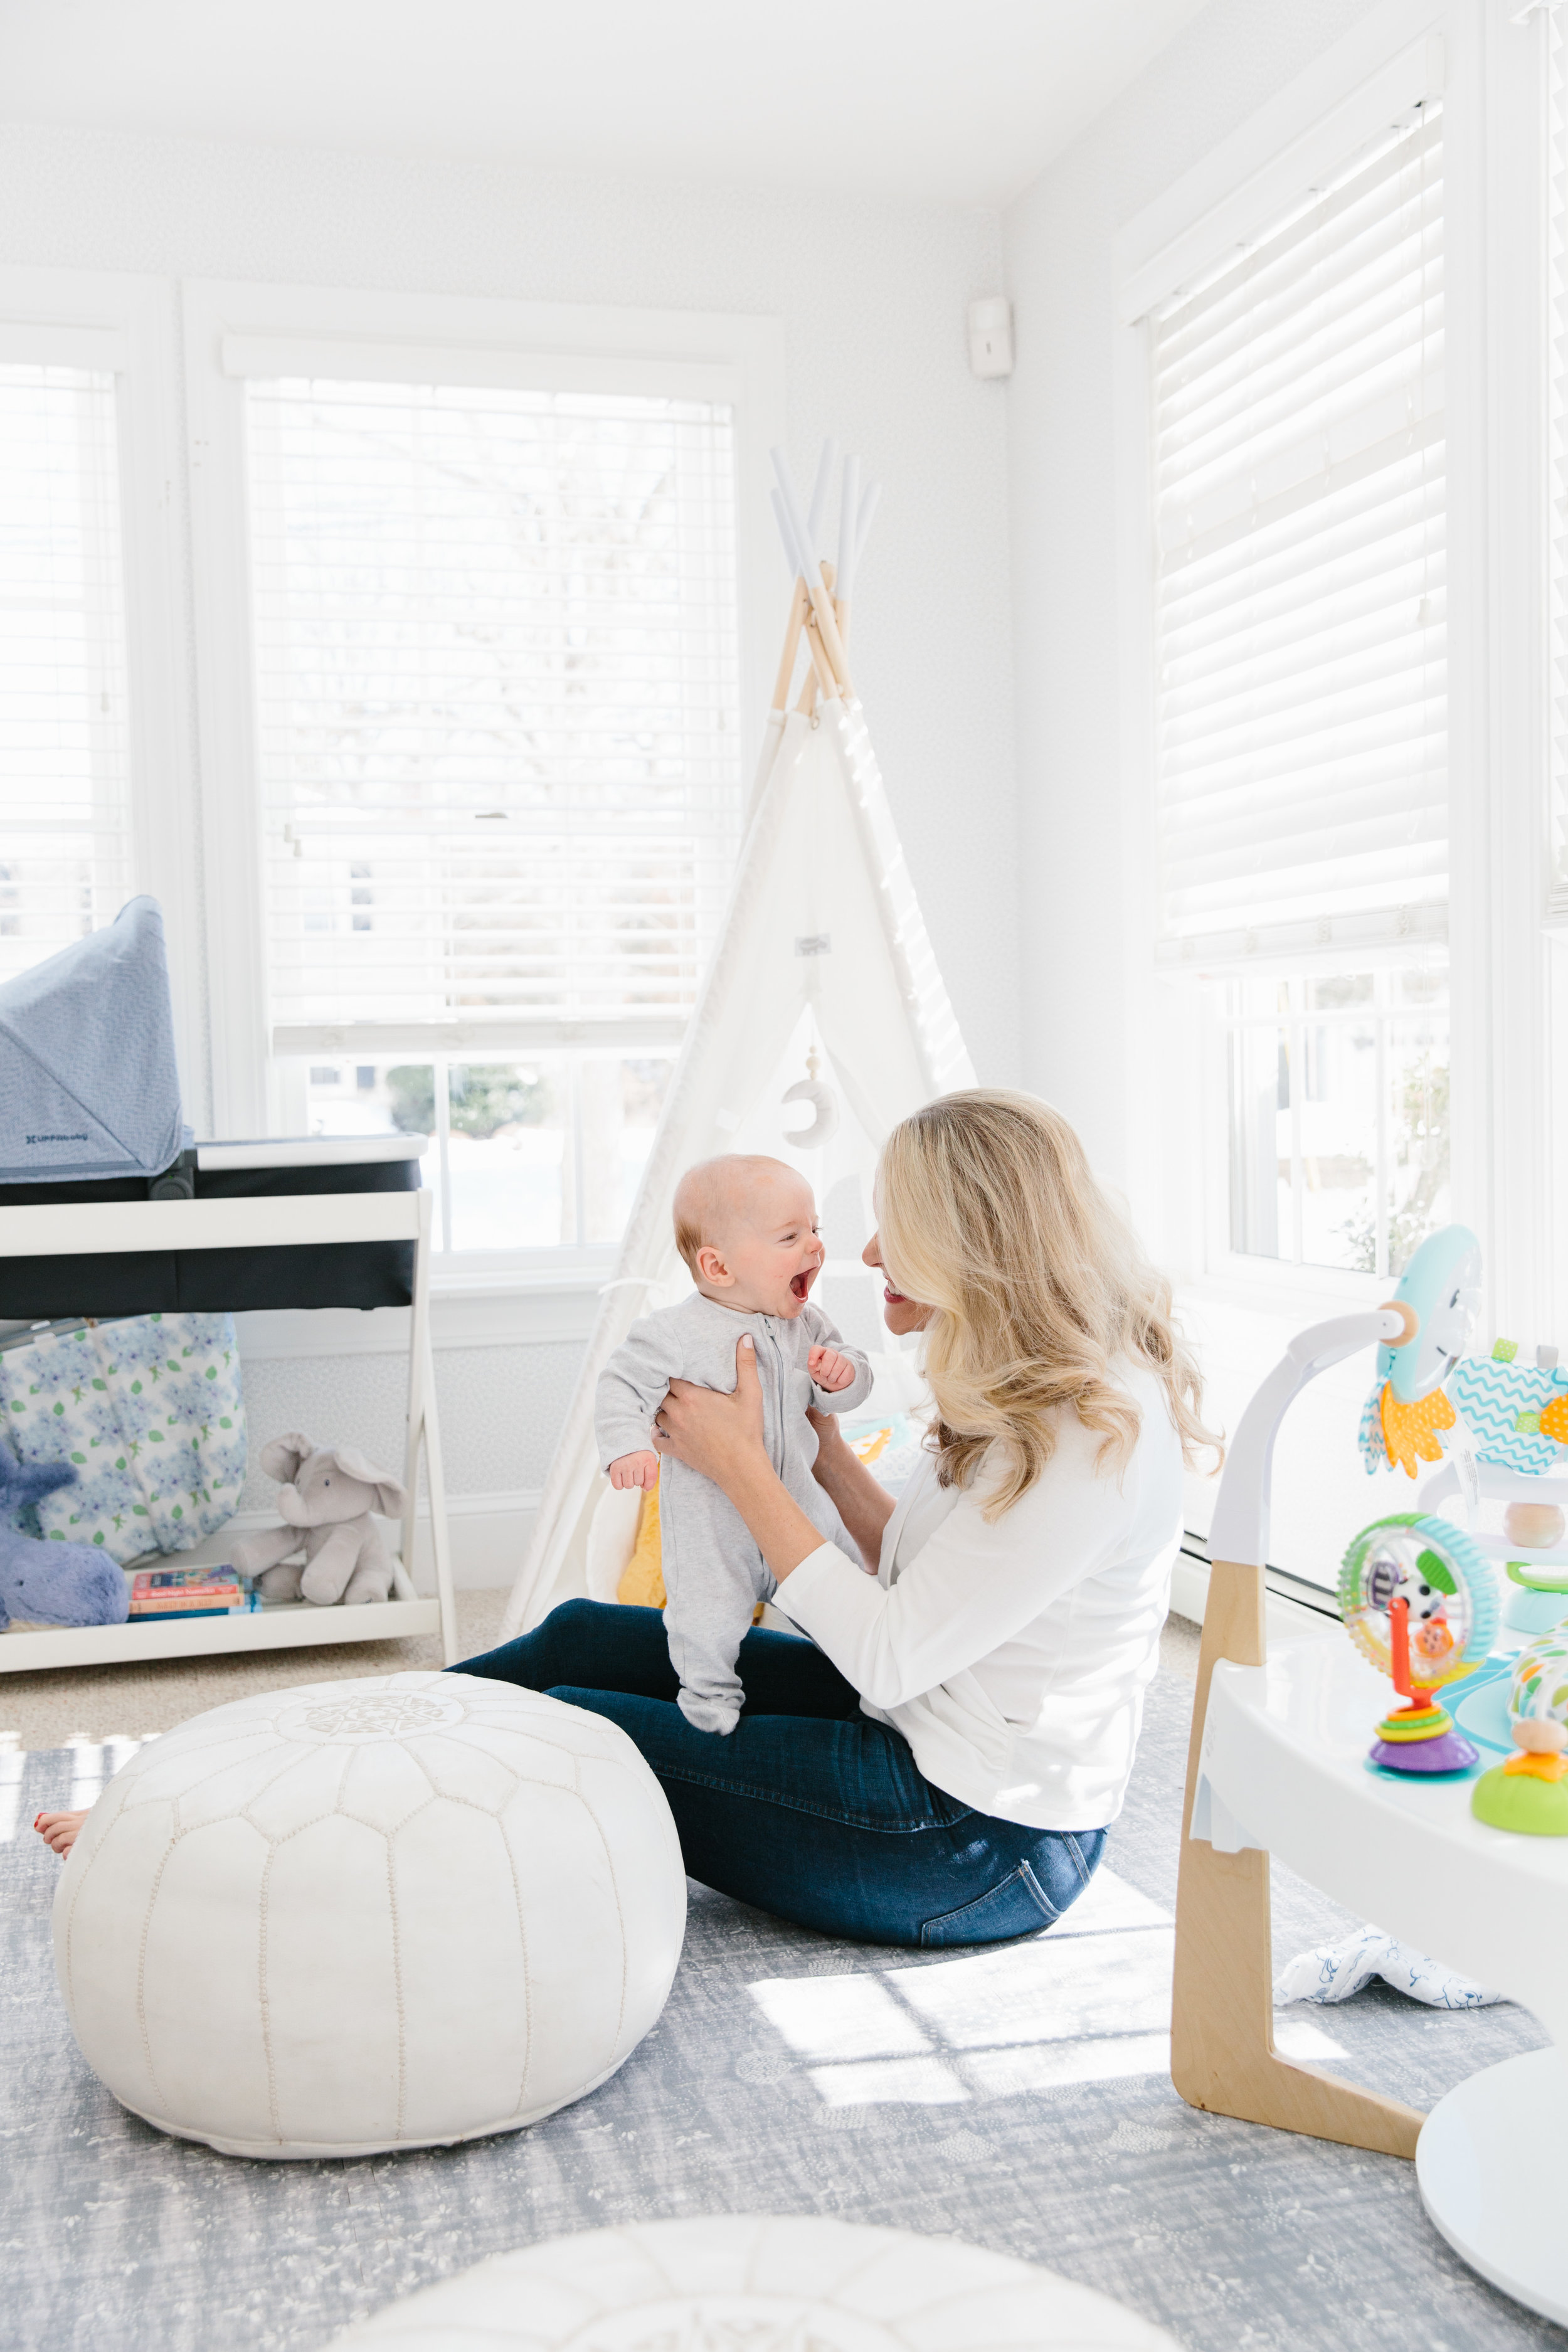 Essential newborn and baby gear birth to 4 months from Abby Capalbo | Photography: Erin McGinn